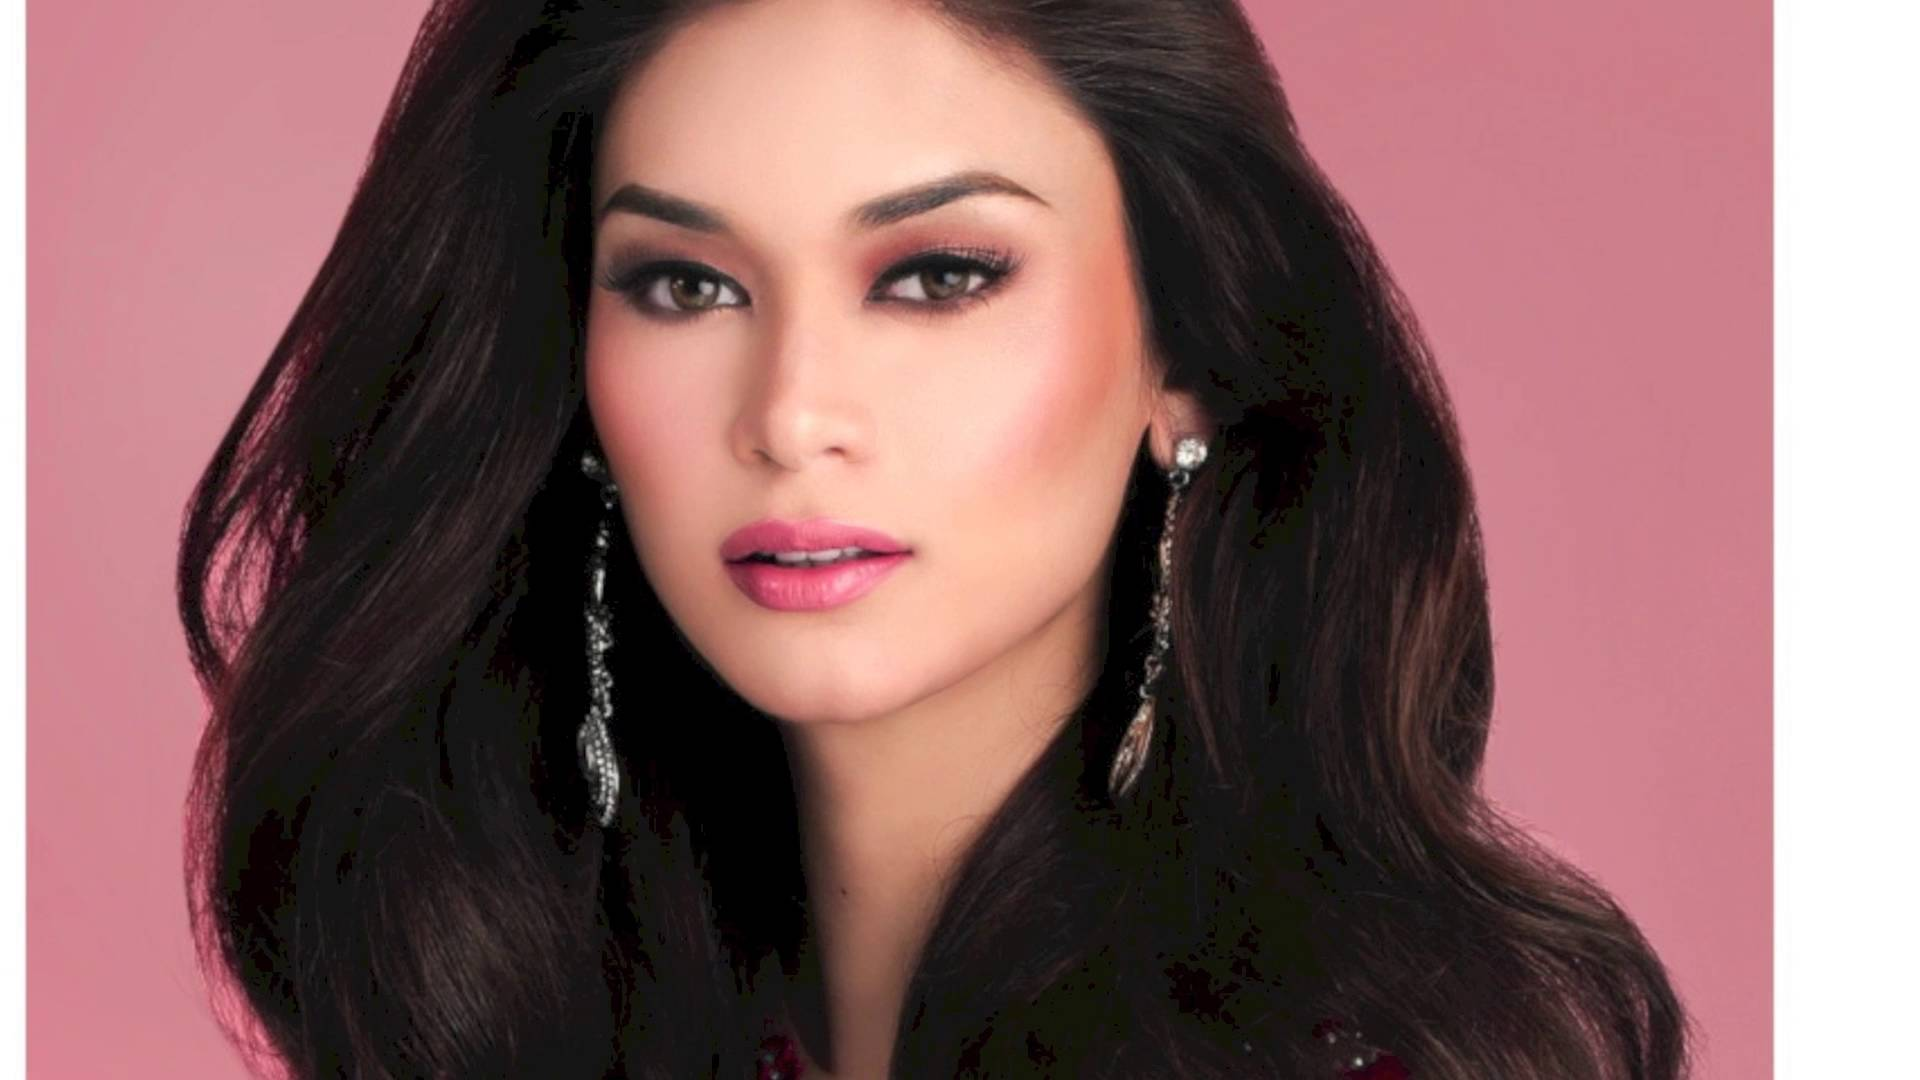 Pia Wurtzbach hd wallpaper